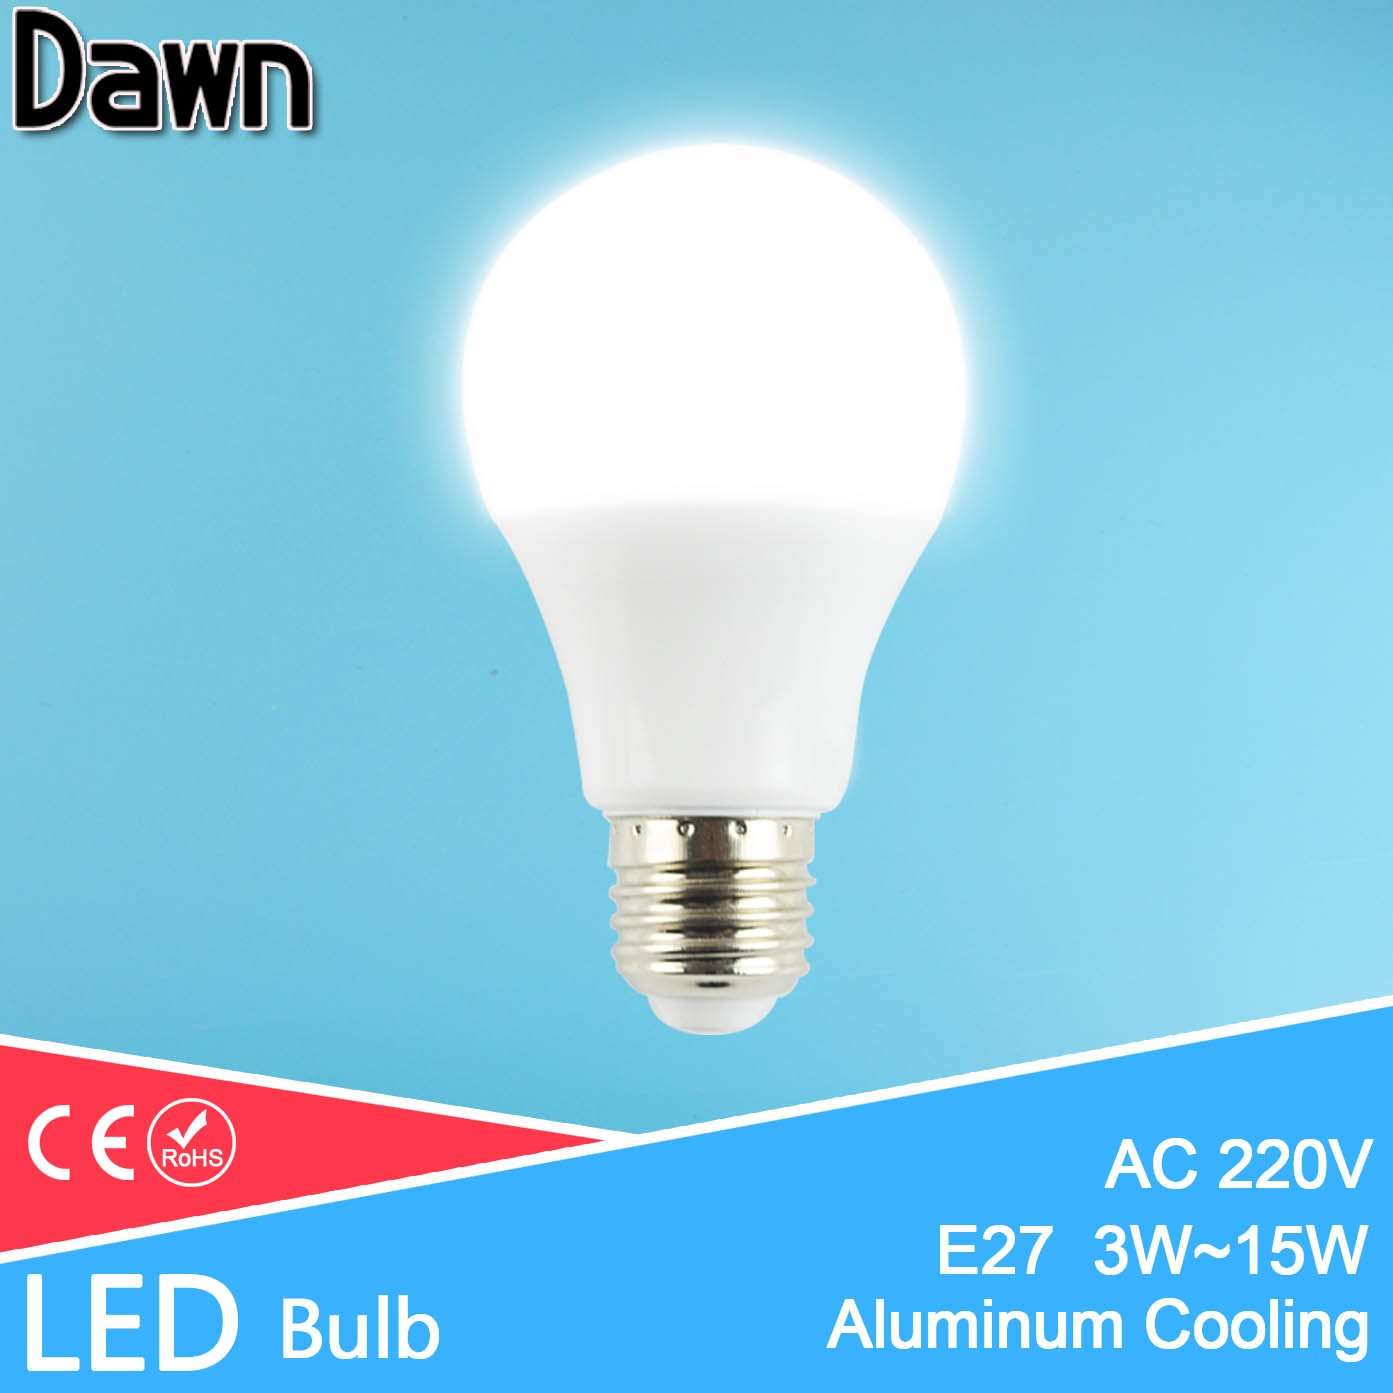 High Bright Aluminum & ABS LED Bulb E27 Lamp Light 3W 5W 7W 9W 12W 15W 220V 240V SMD 2835 Lamparas Bombillas Zarovka Ampoule LED